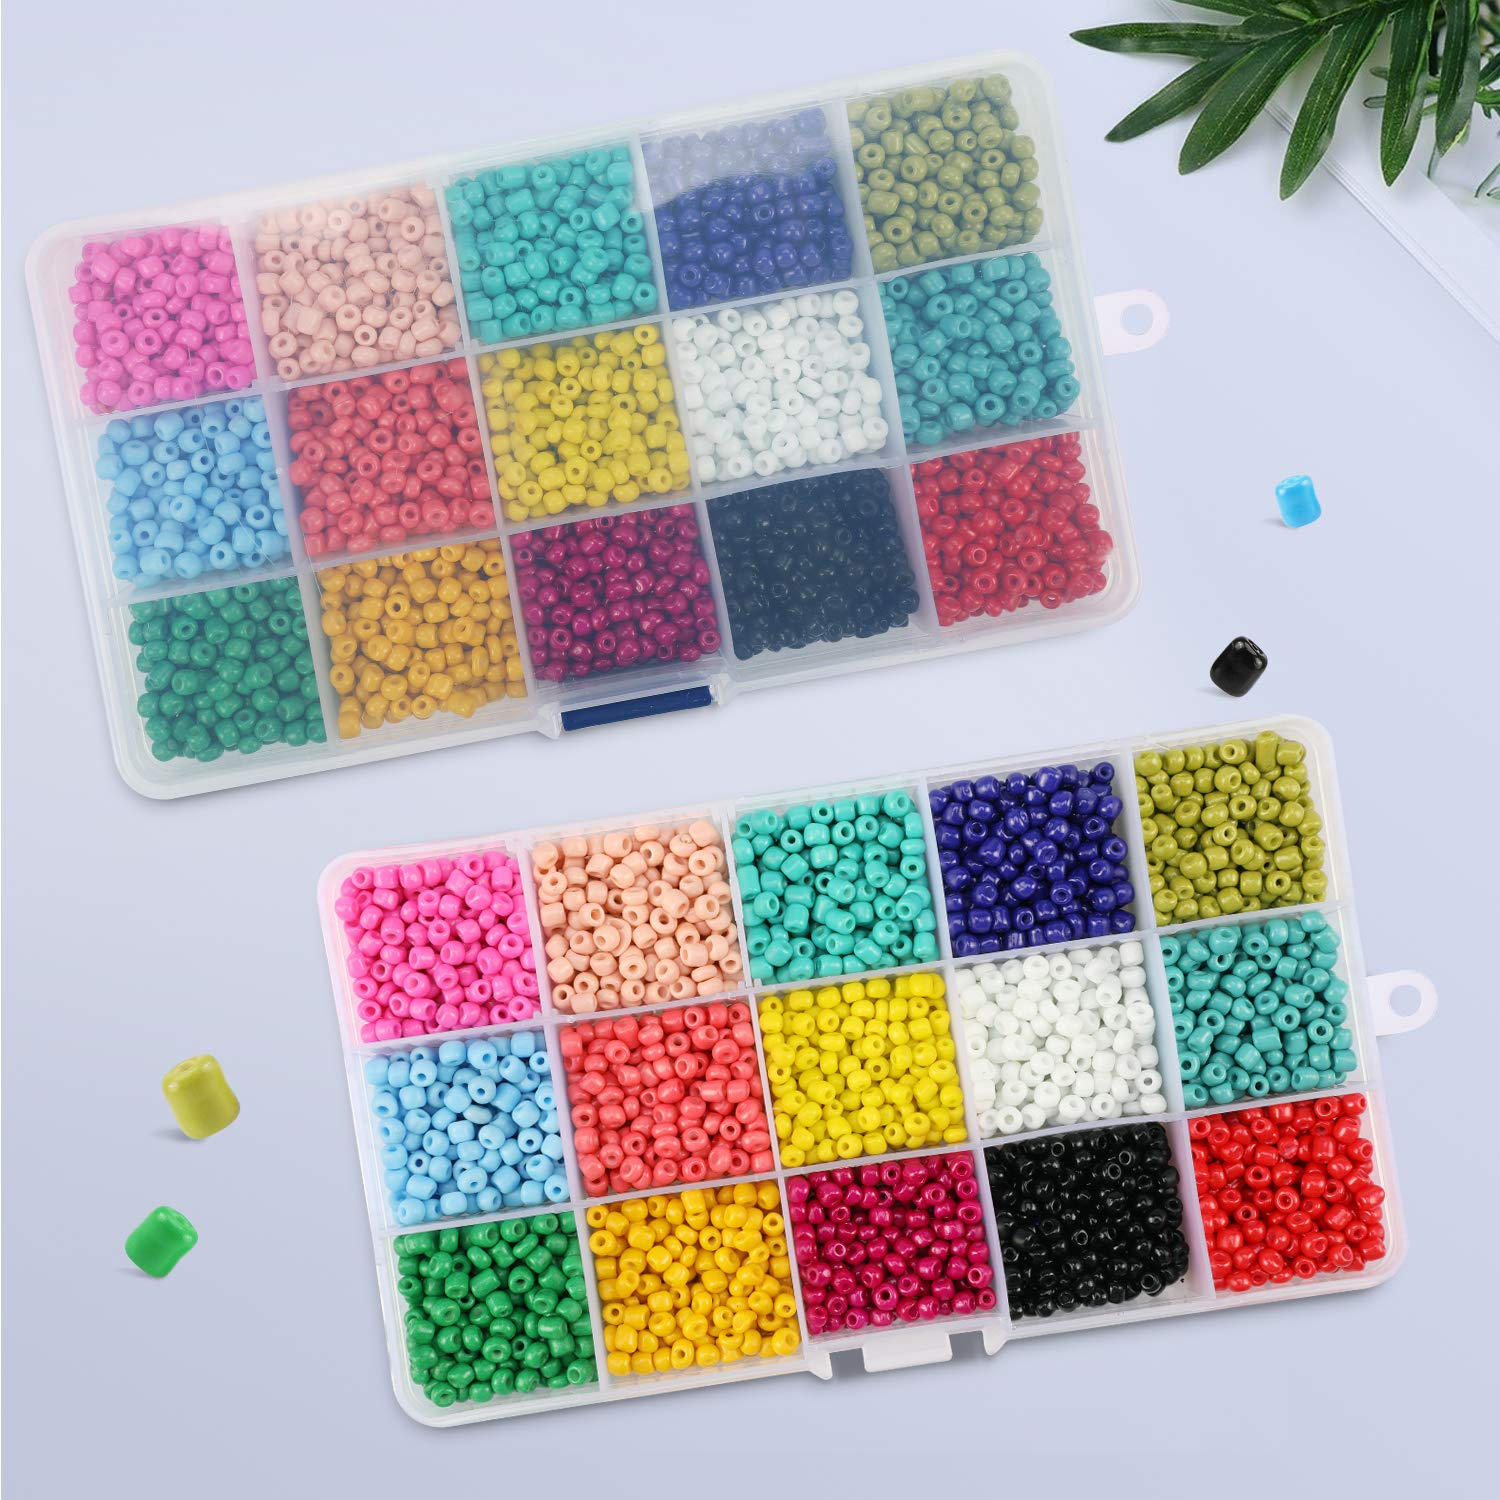 Hole 1.0mm Glass Seed Beads 3mm Ewparts Glass Beads for Friendship bracelet Transparent,300pcs//Color, 15 Colors